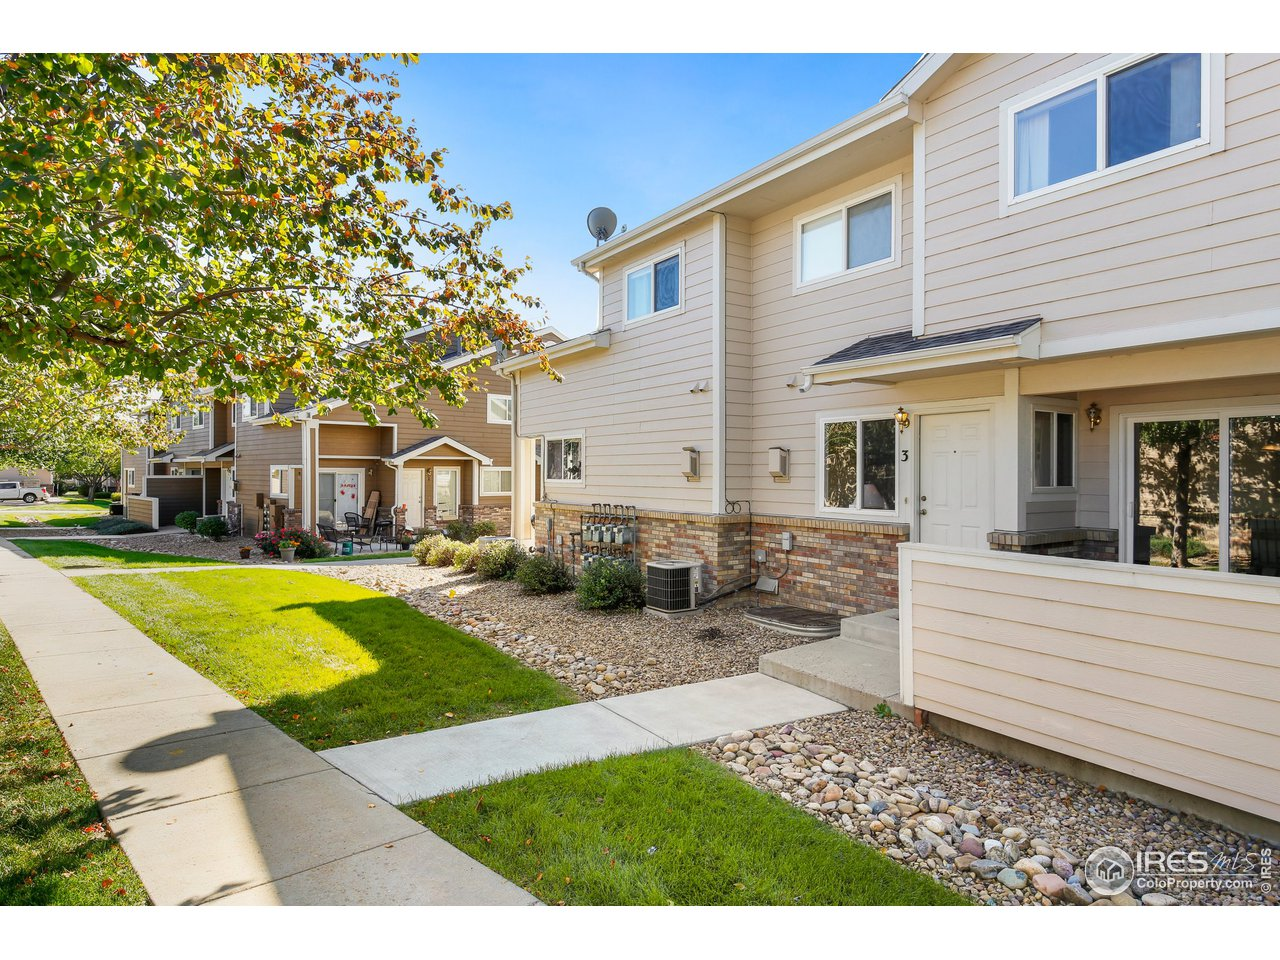 1601 Great Western Dr E3, Longmont CO 80501